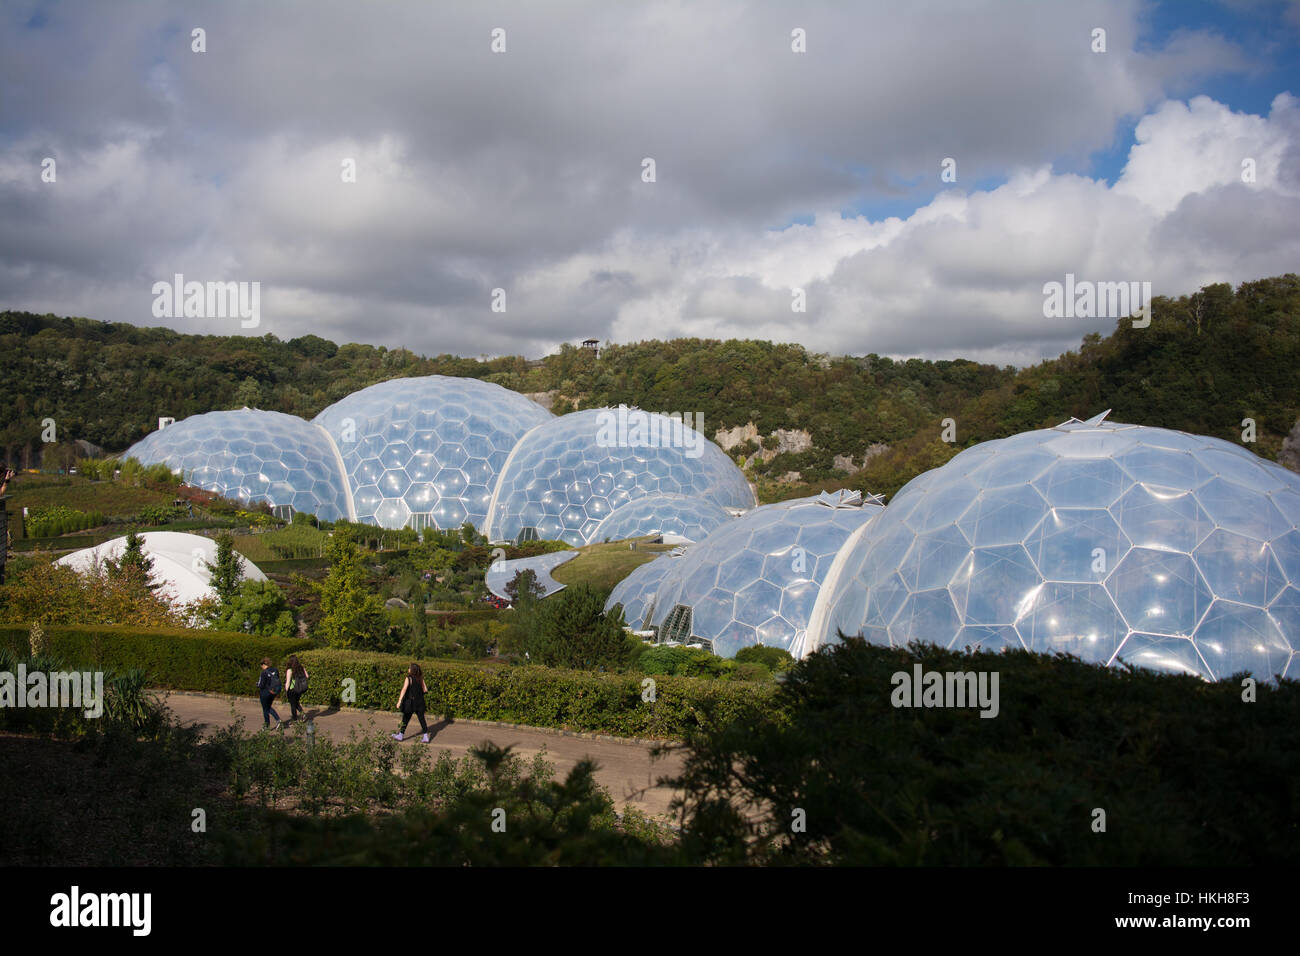 L'Eden Project, Cornwall, UK Photo Stock